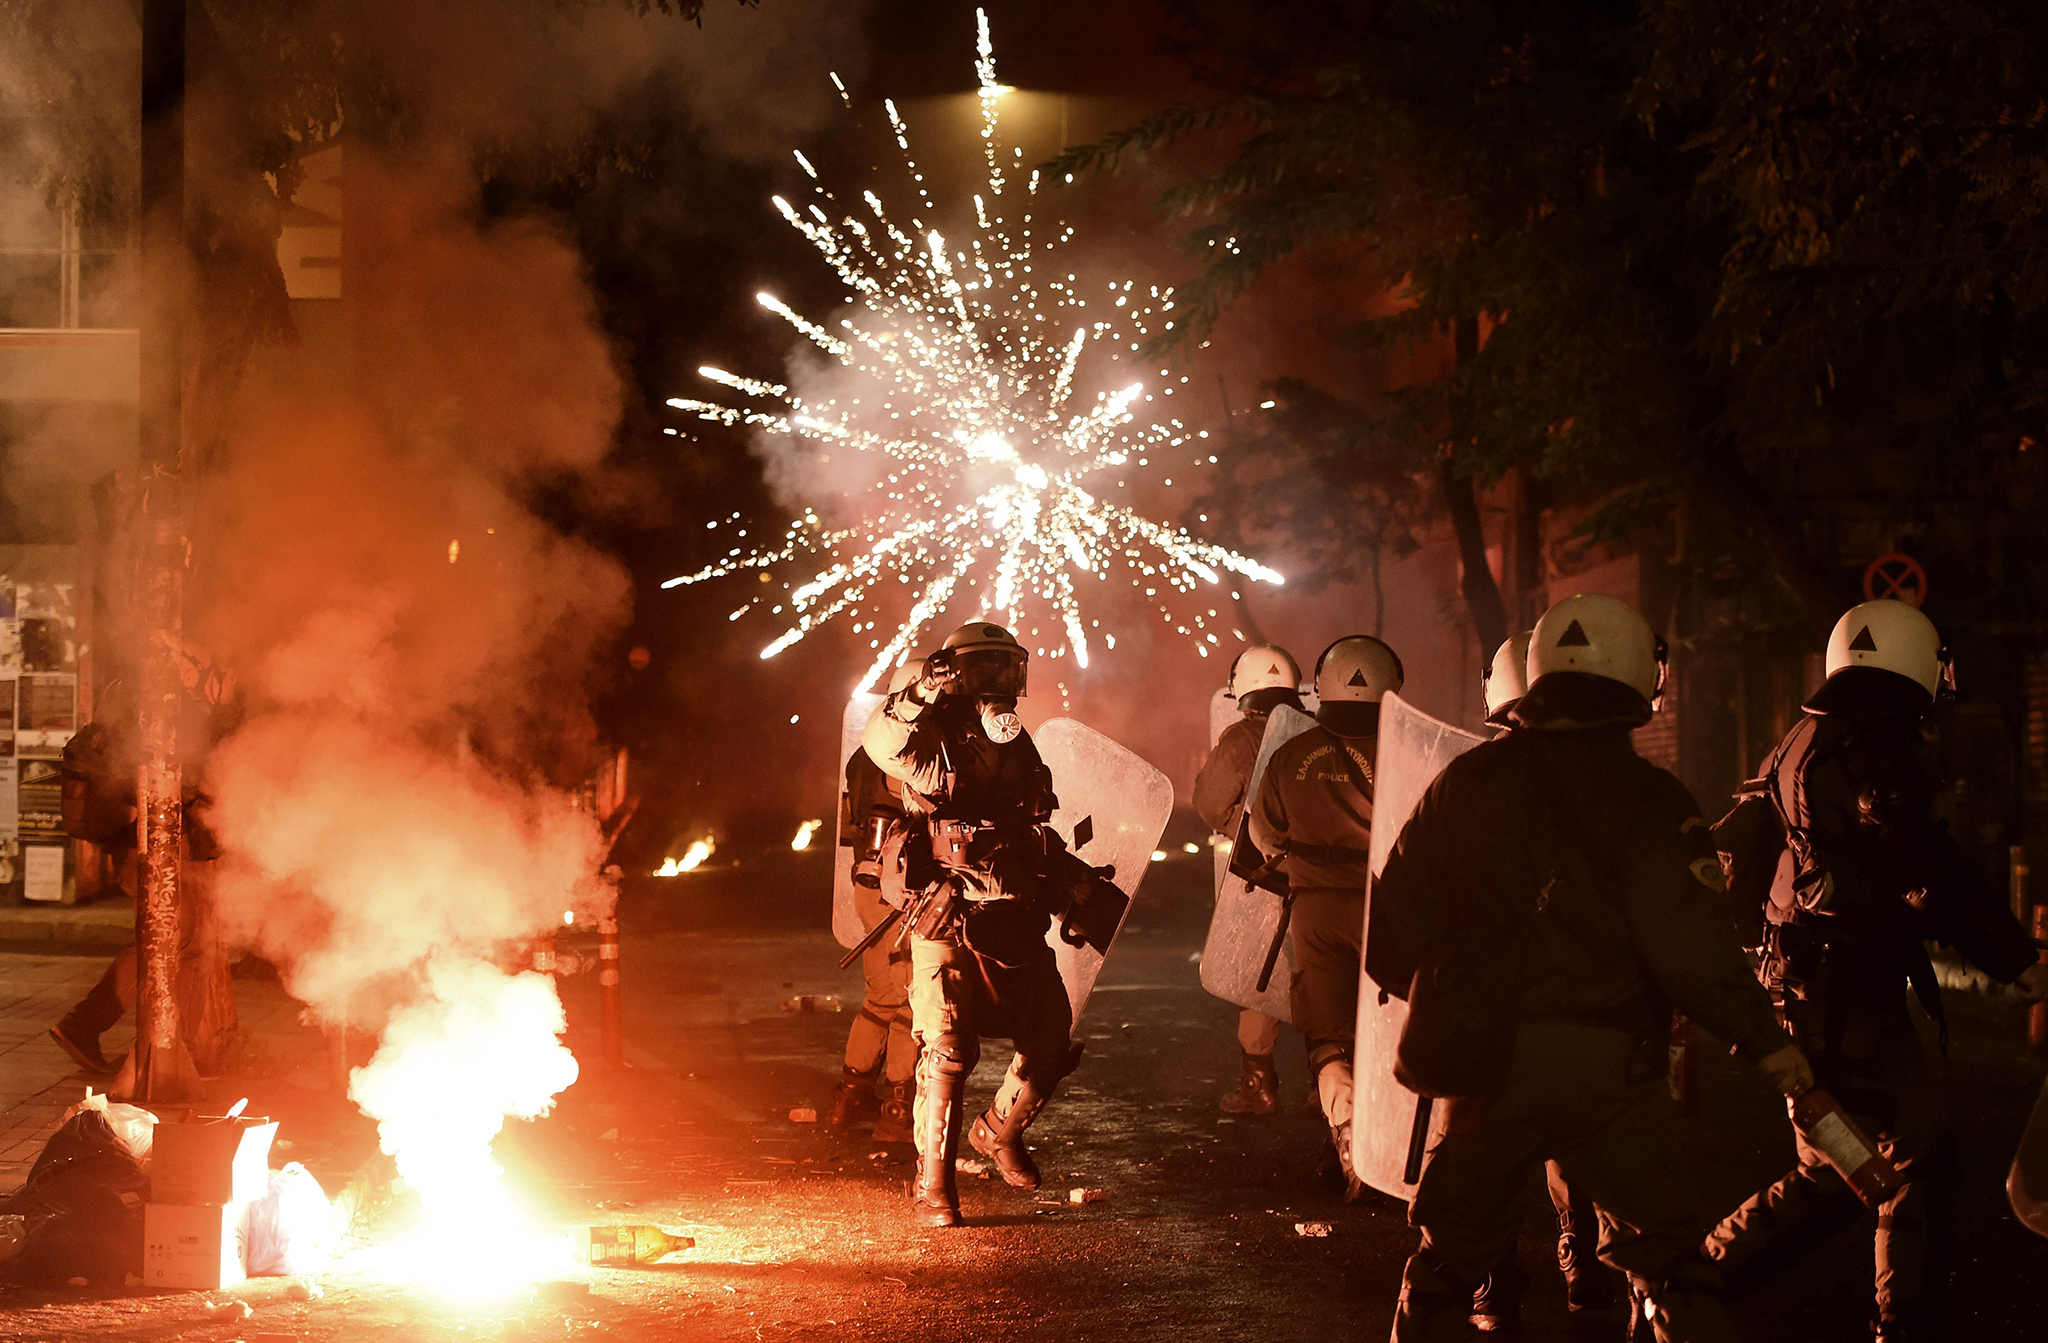 Police officers look on as a firework thrown by protesters explodes in front of them in the central district of Exarchia in Athens, on December 6, 2016, following a commemorative rally marking the eighth anniversary of the killing of teenager Alexandros Grigoropoulos by a Greek police officer.   Hundreds of  pupils, university students and workers  participated in  a  rally to mark the eighth anniversary of the fatal police shooting of a 15-years old student , which sparked riots in the country in 2008.    / AFP PHOTO / ARIS MESSINISARIS MESSINIS/AFP/Getty Images